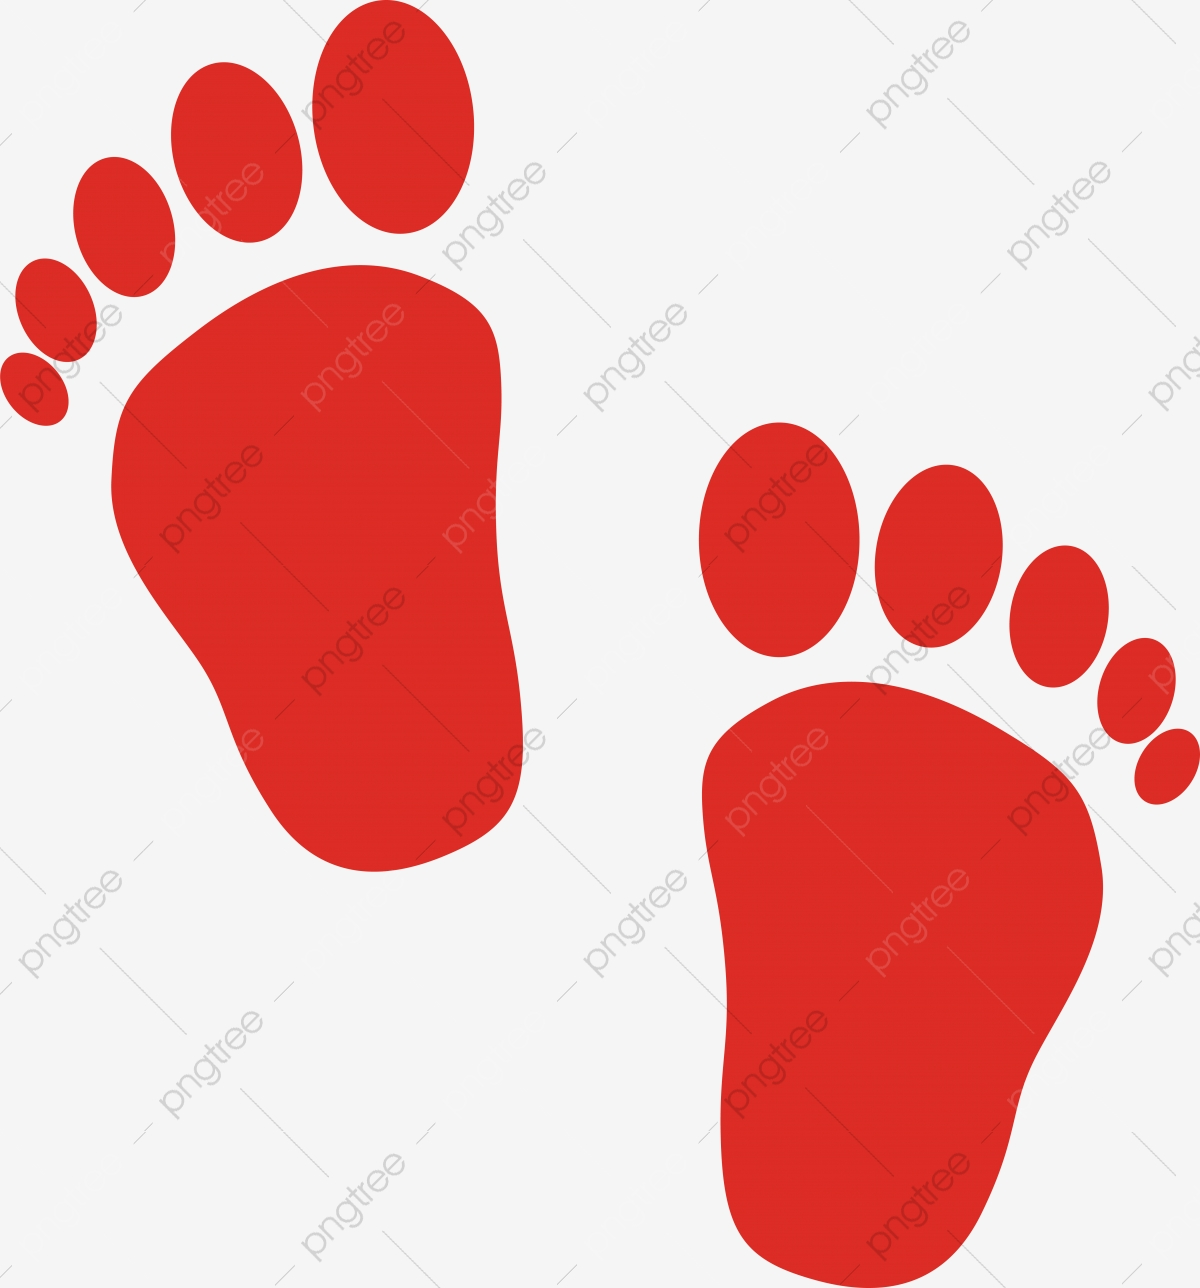 feet clipart png images vector and psd files free download on pngtree https pngtree com freepng a pair of blood red footprints 4536253 html